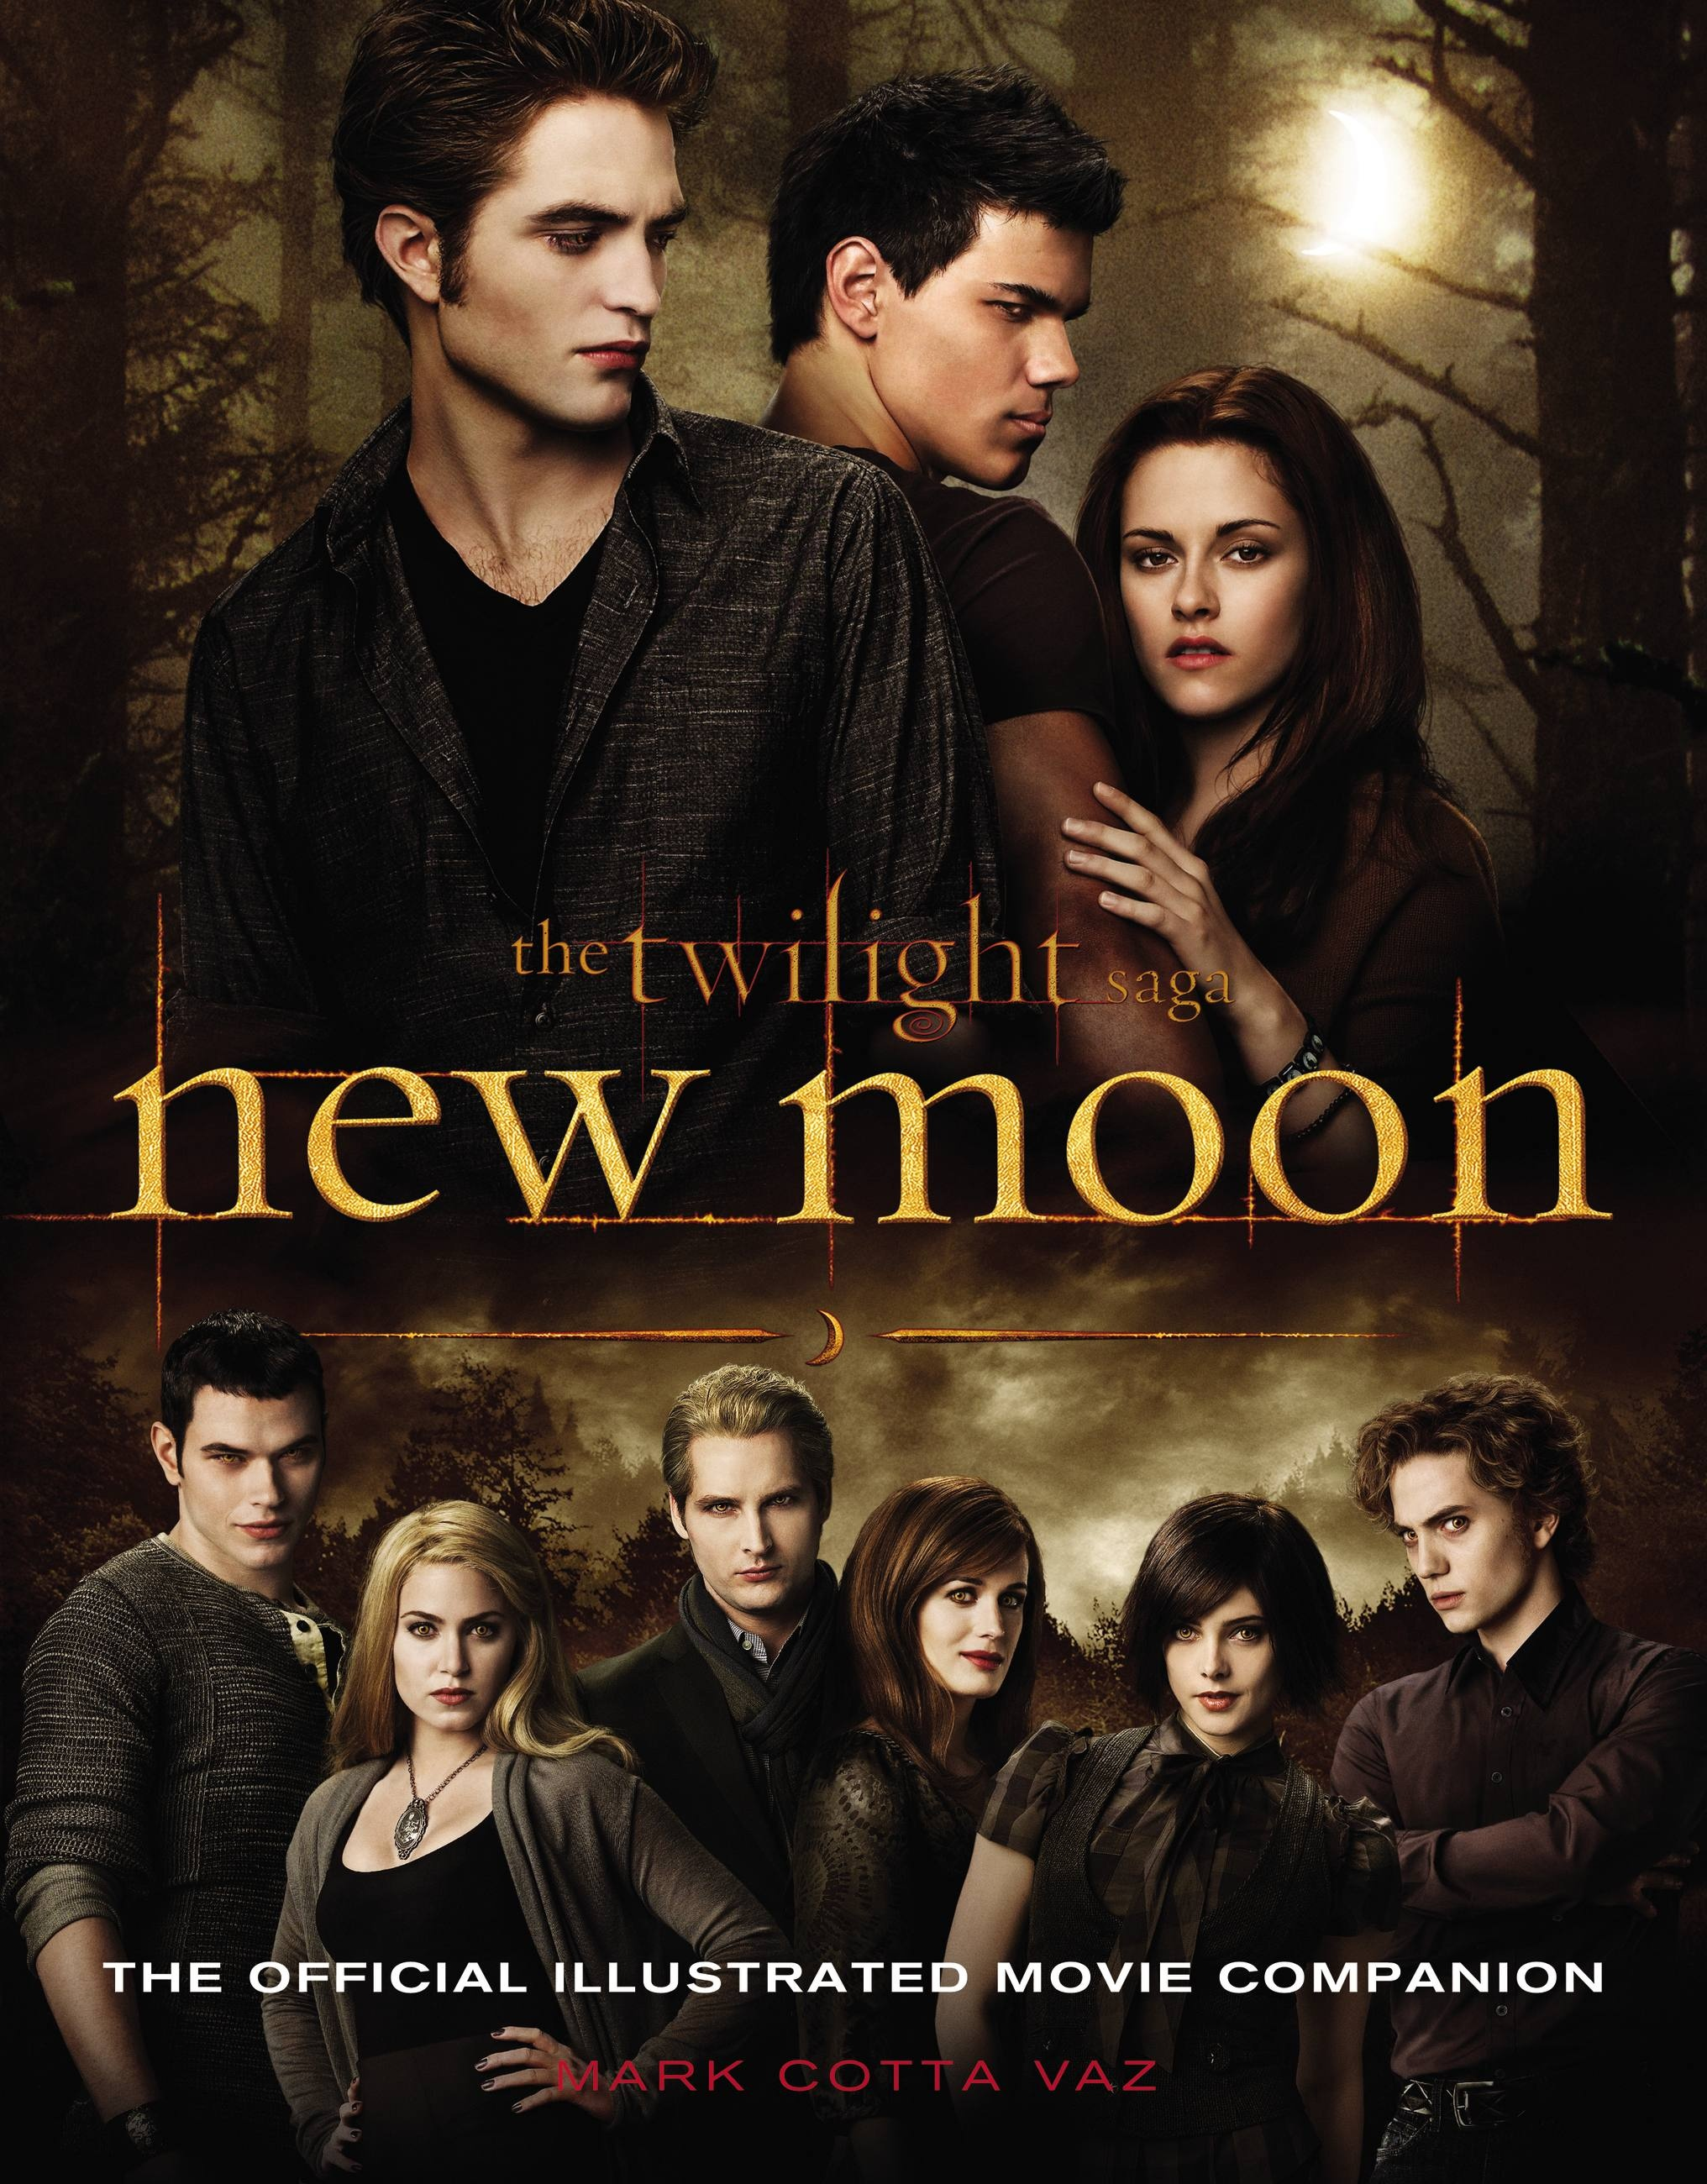 twilight book and movie Stephenie meyer updates and news best known for her twilight series, stephenie meyer's four-book collection has sold over 100 million copies globally.